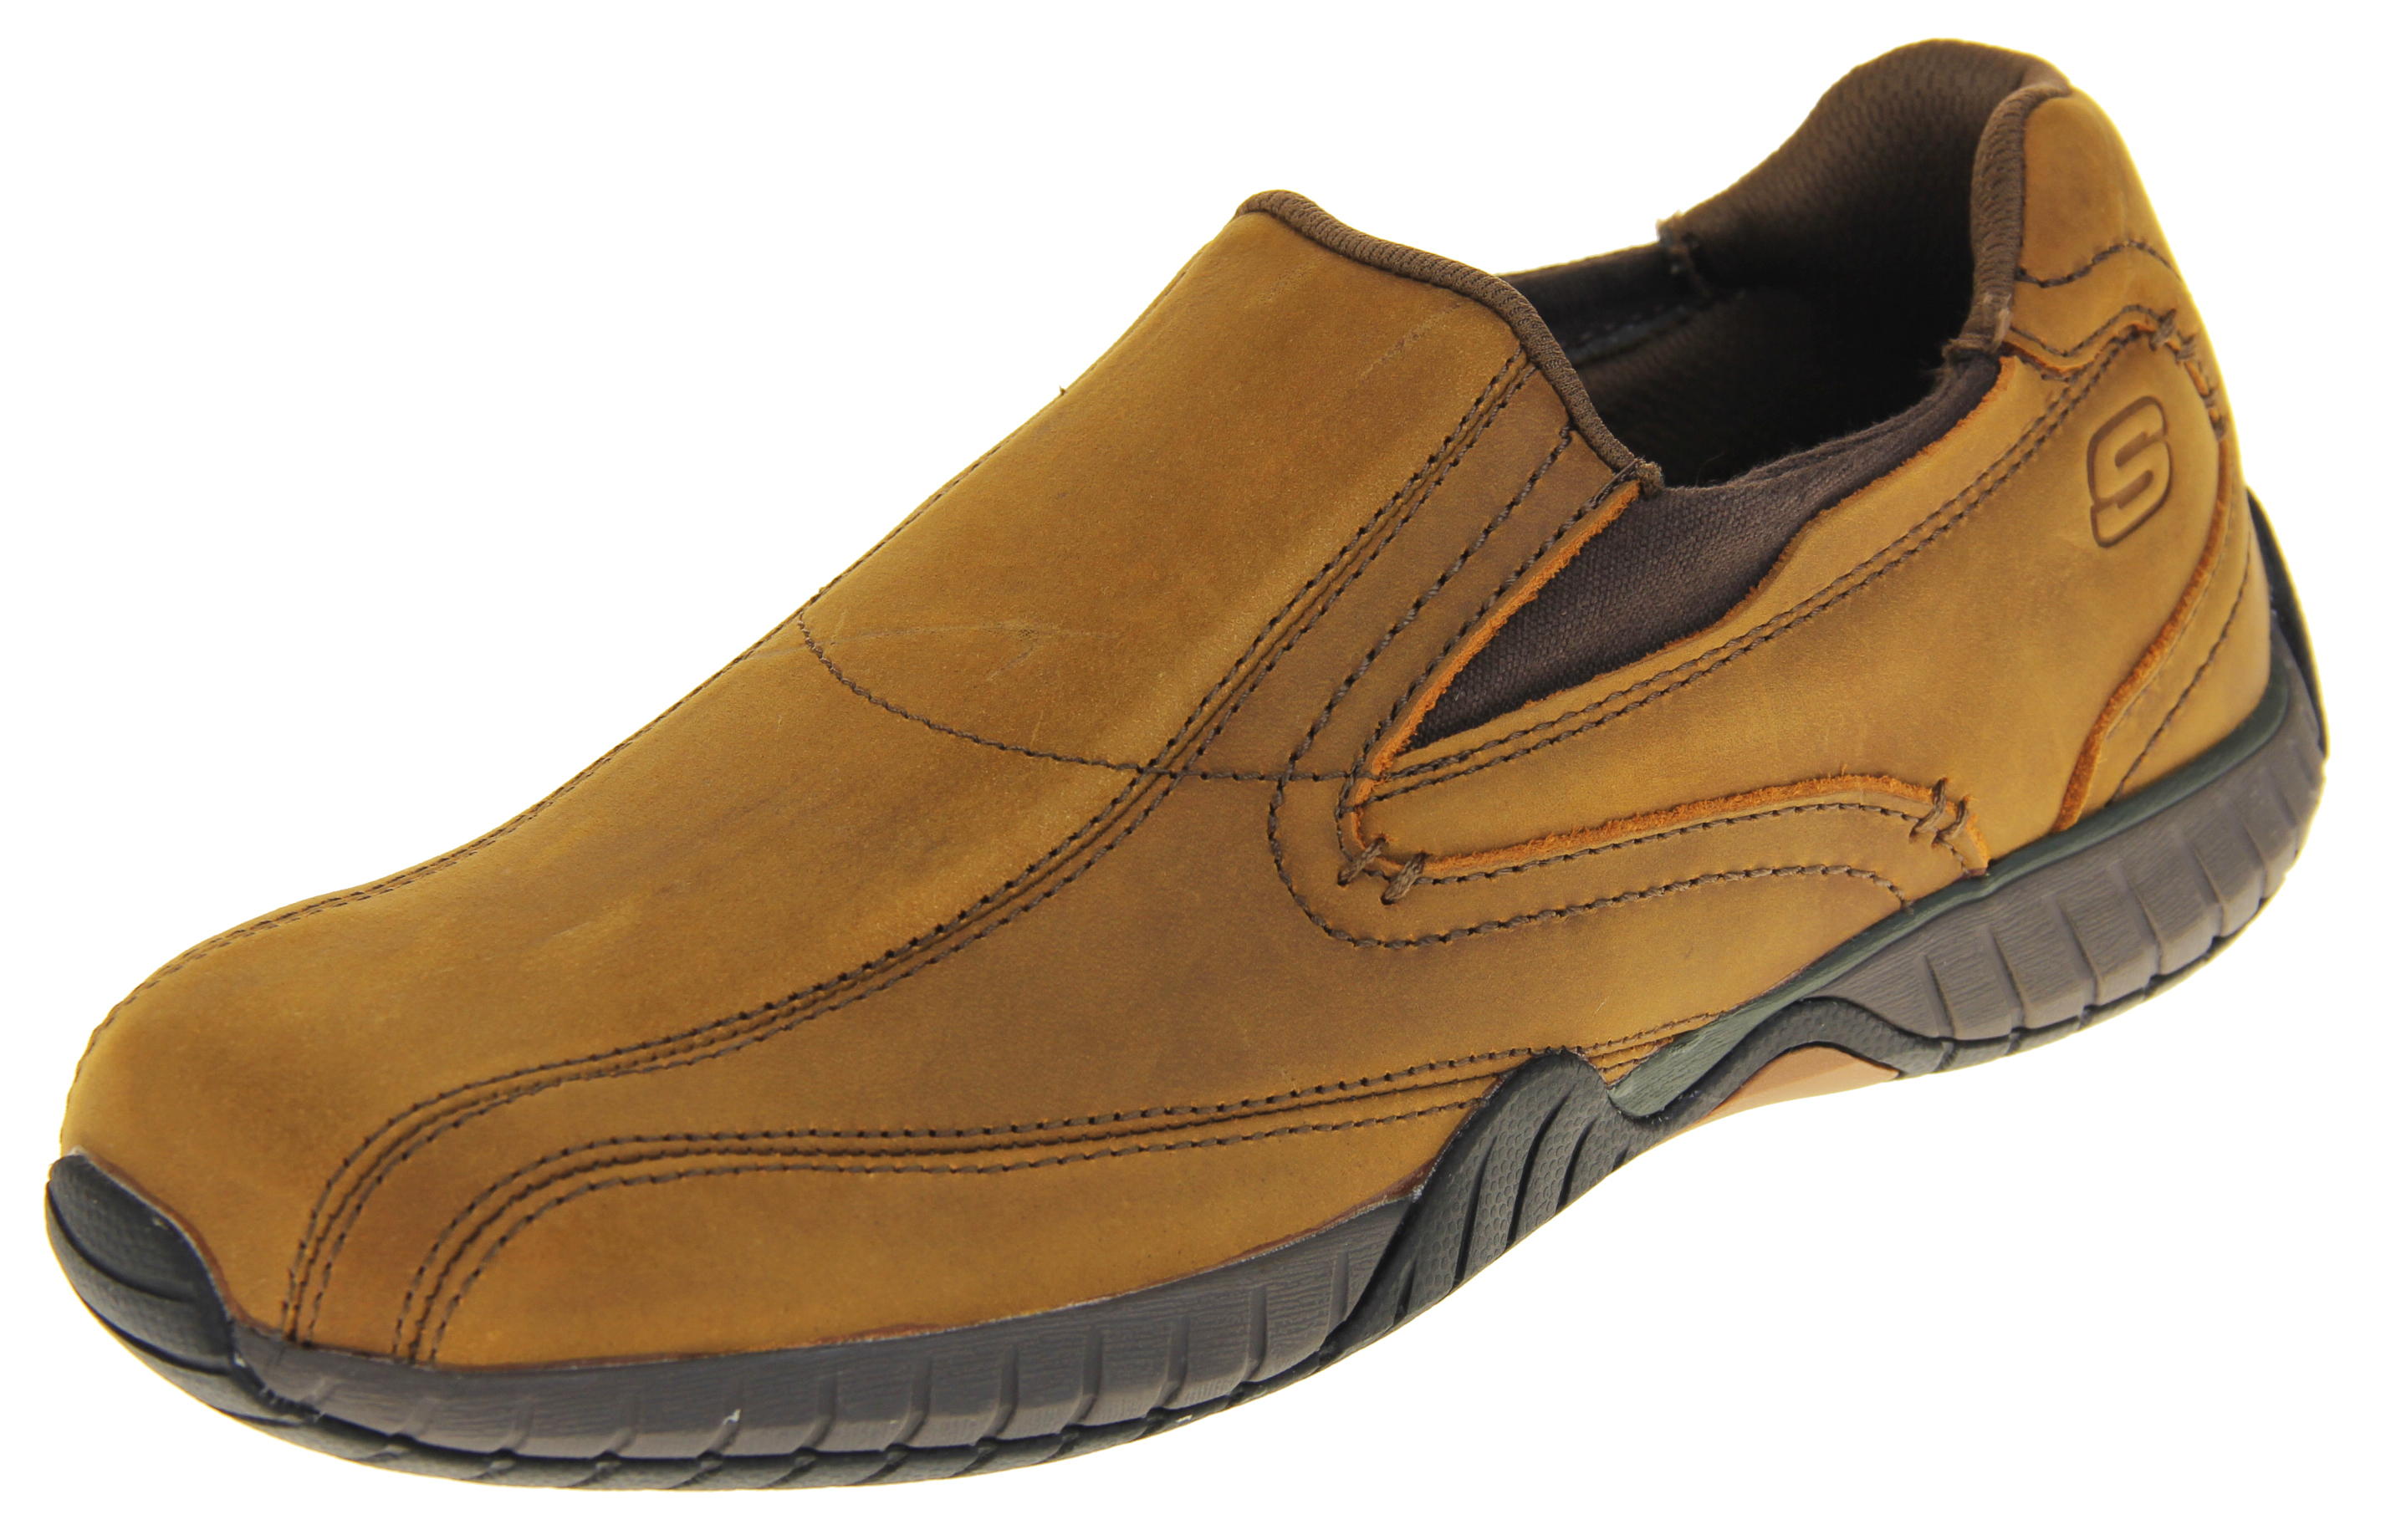 bbe7b9a979f Mens Skechers Brown Quality Leather Memory Foam Loafer Trainers   Womens,  Mens, Kids Shoes   Heels, Trainers & Boots   Footwear Studio